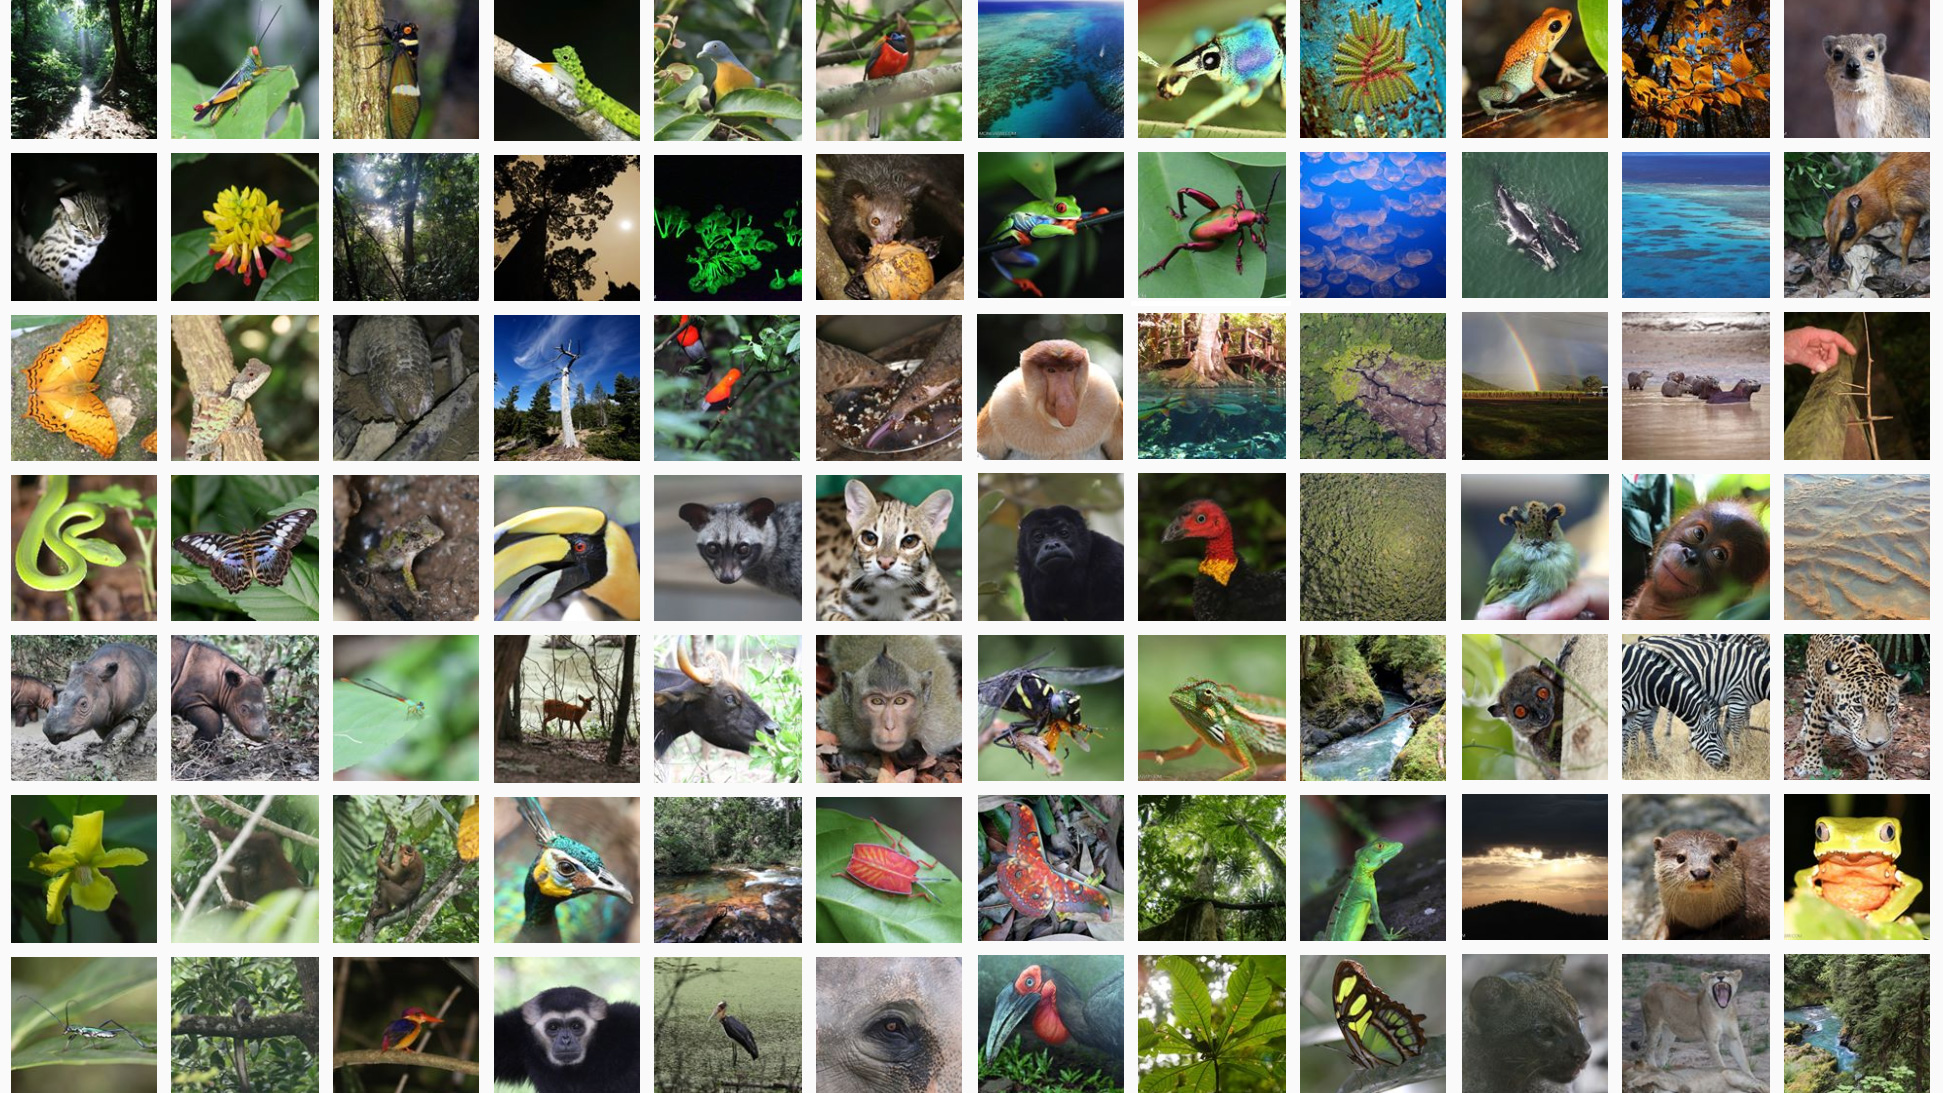 hight resolution of Why do rainforests have so many kinds of plants and animals?